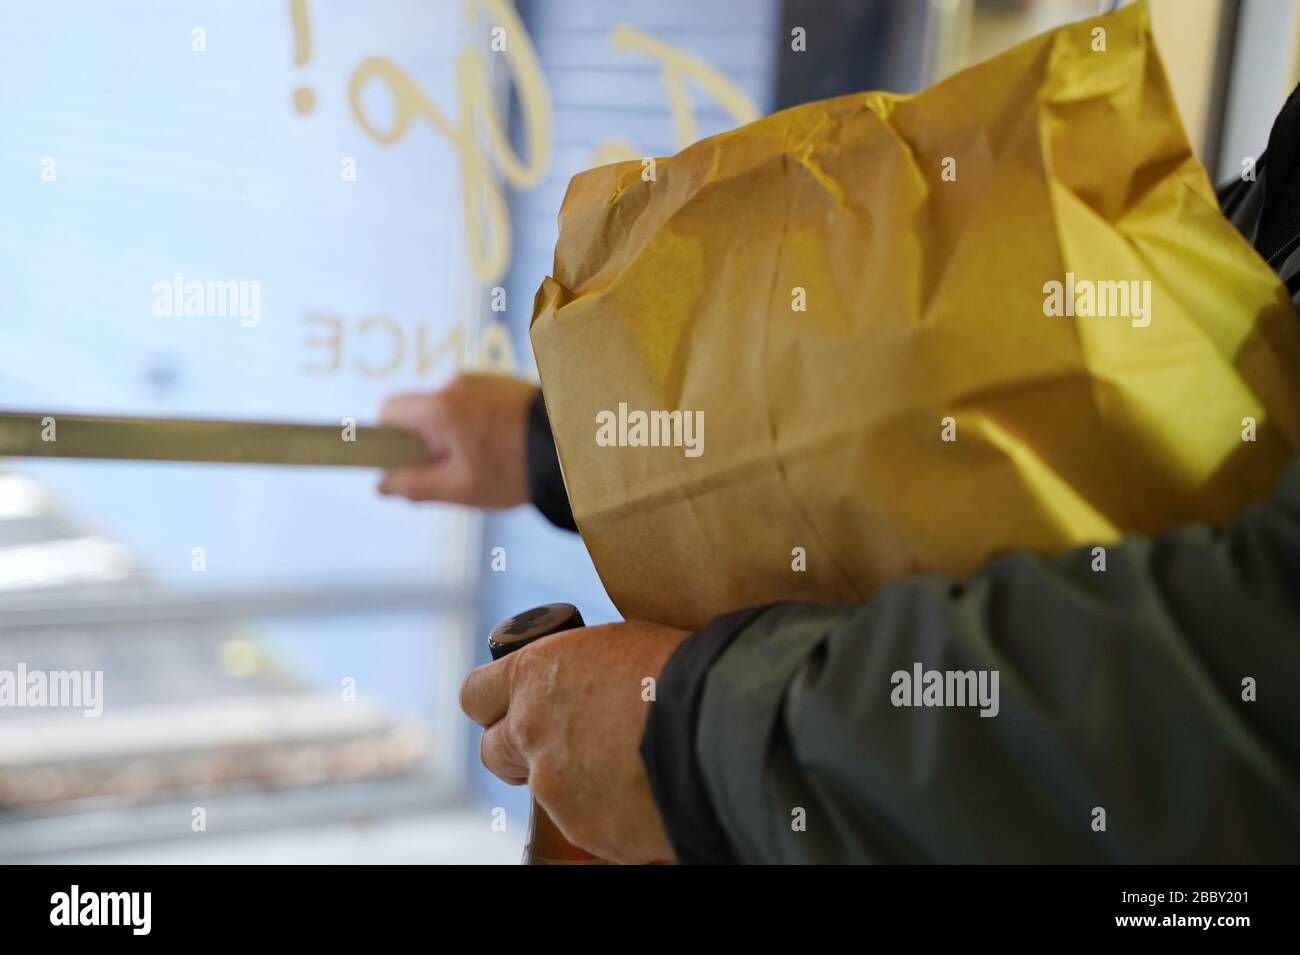 Man pushes the door handle to exit the restaurant after picking up a food order (focus on edge of paper bag) Stock Photo